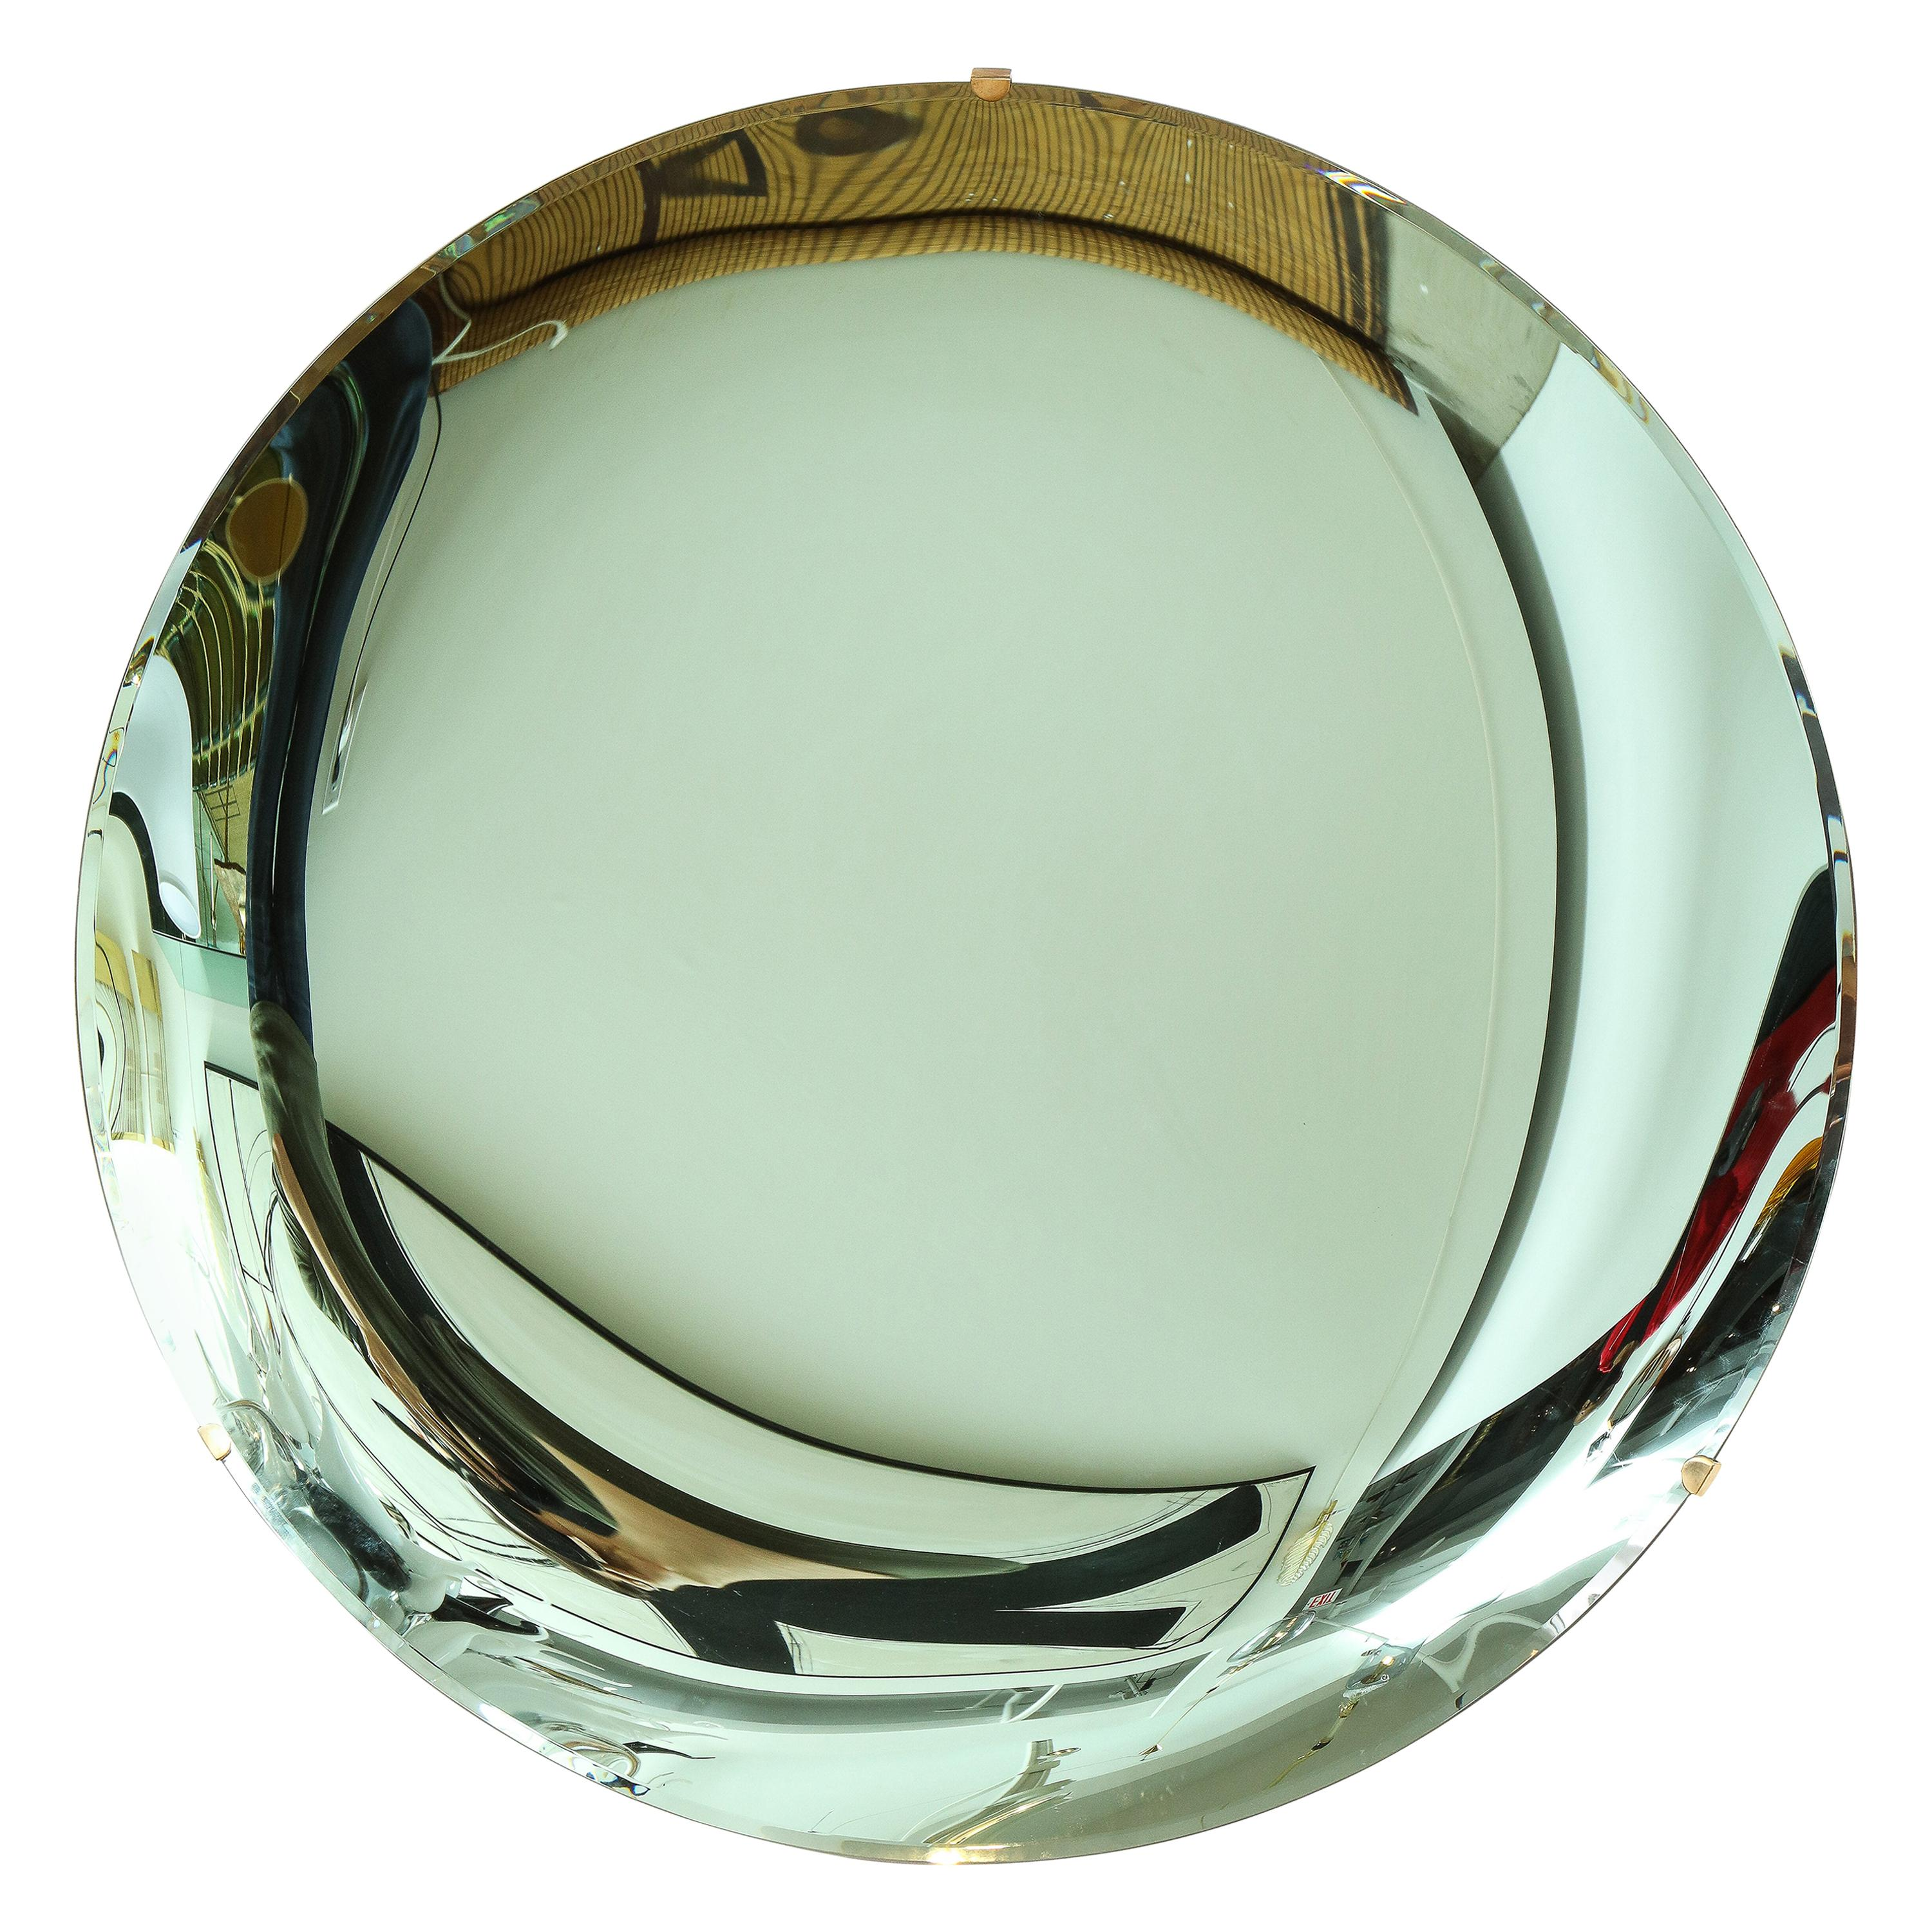 """Large Sculptural Round Concave Green """"Verde"""" Mirror, Italy, 2021"""